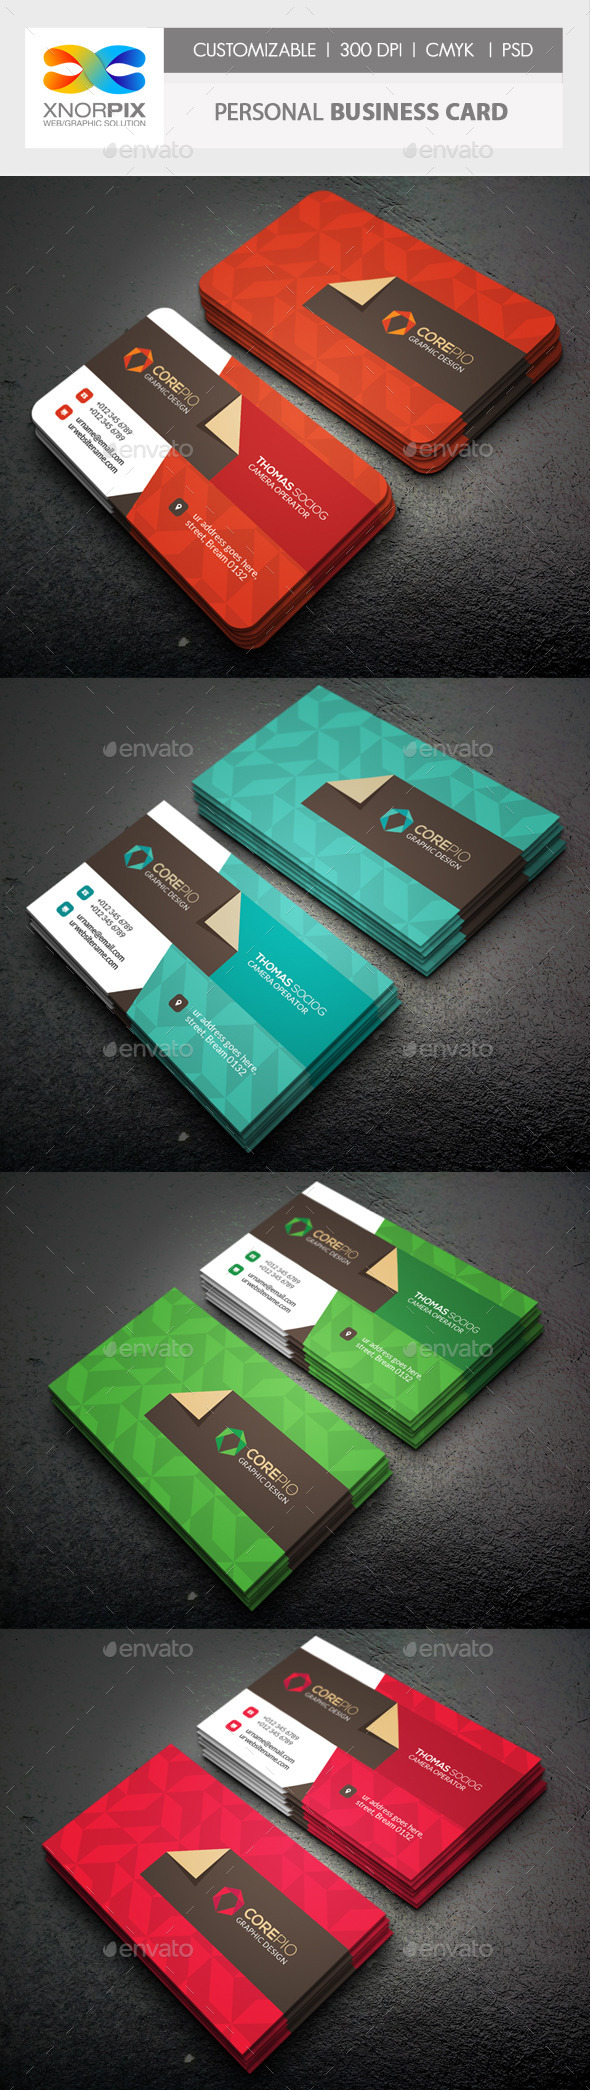 GraphicRiver Personal Business Card 10438119